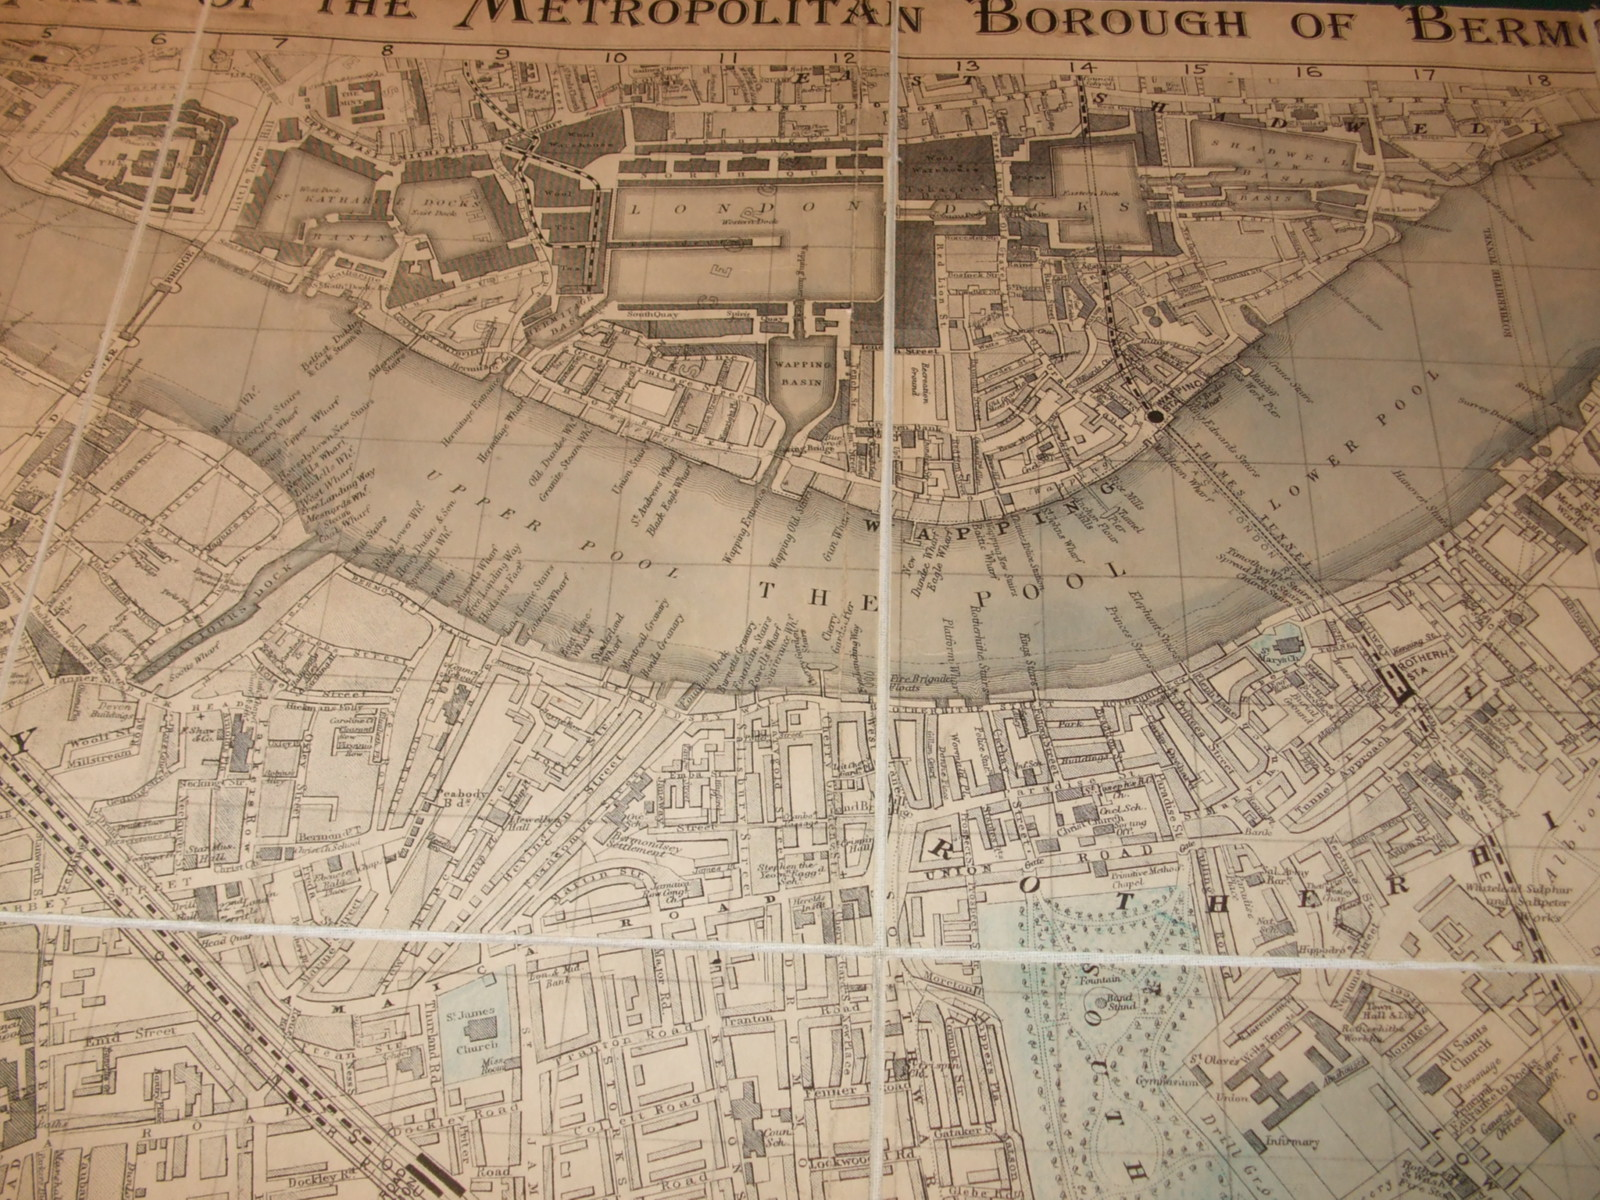 Image for Bermondsey. Map of the Metropolitan Borough of Bermondsey [ 1921 ]